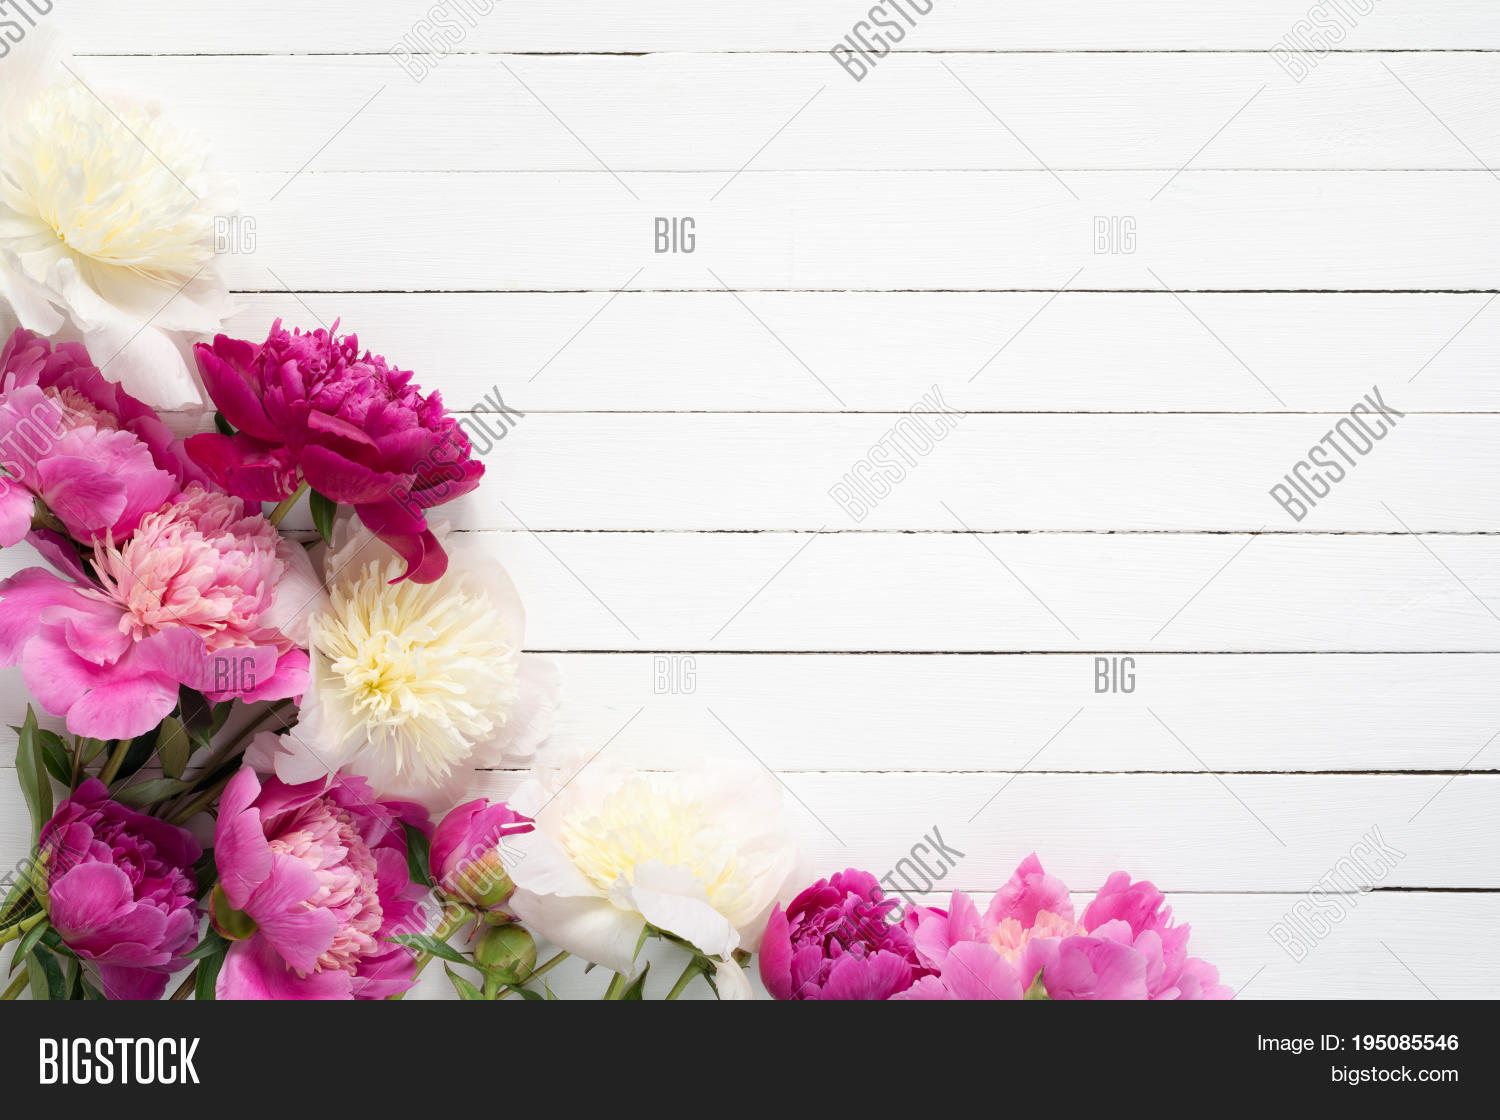 Floral Frame Image Photo Free Trial Bigstock